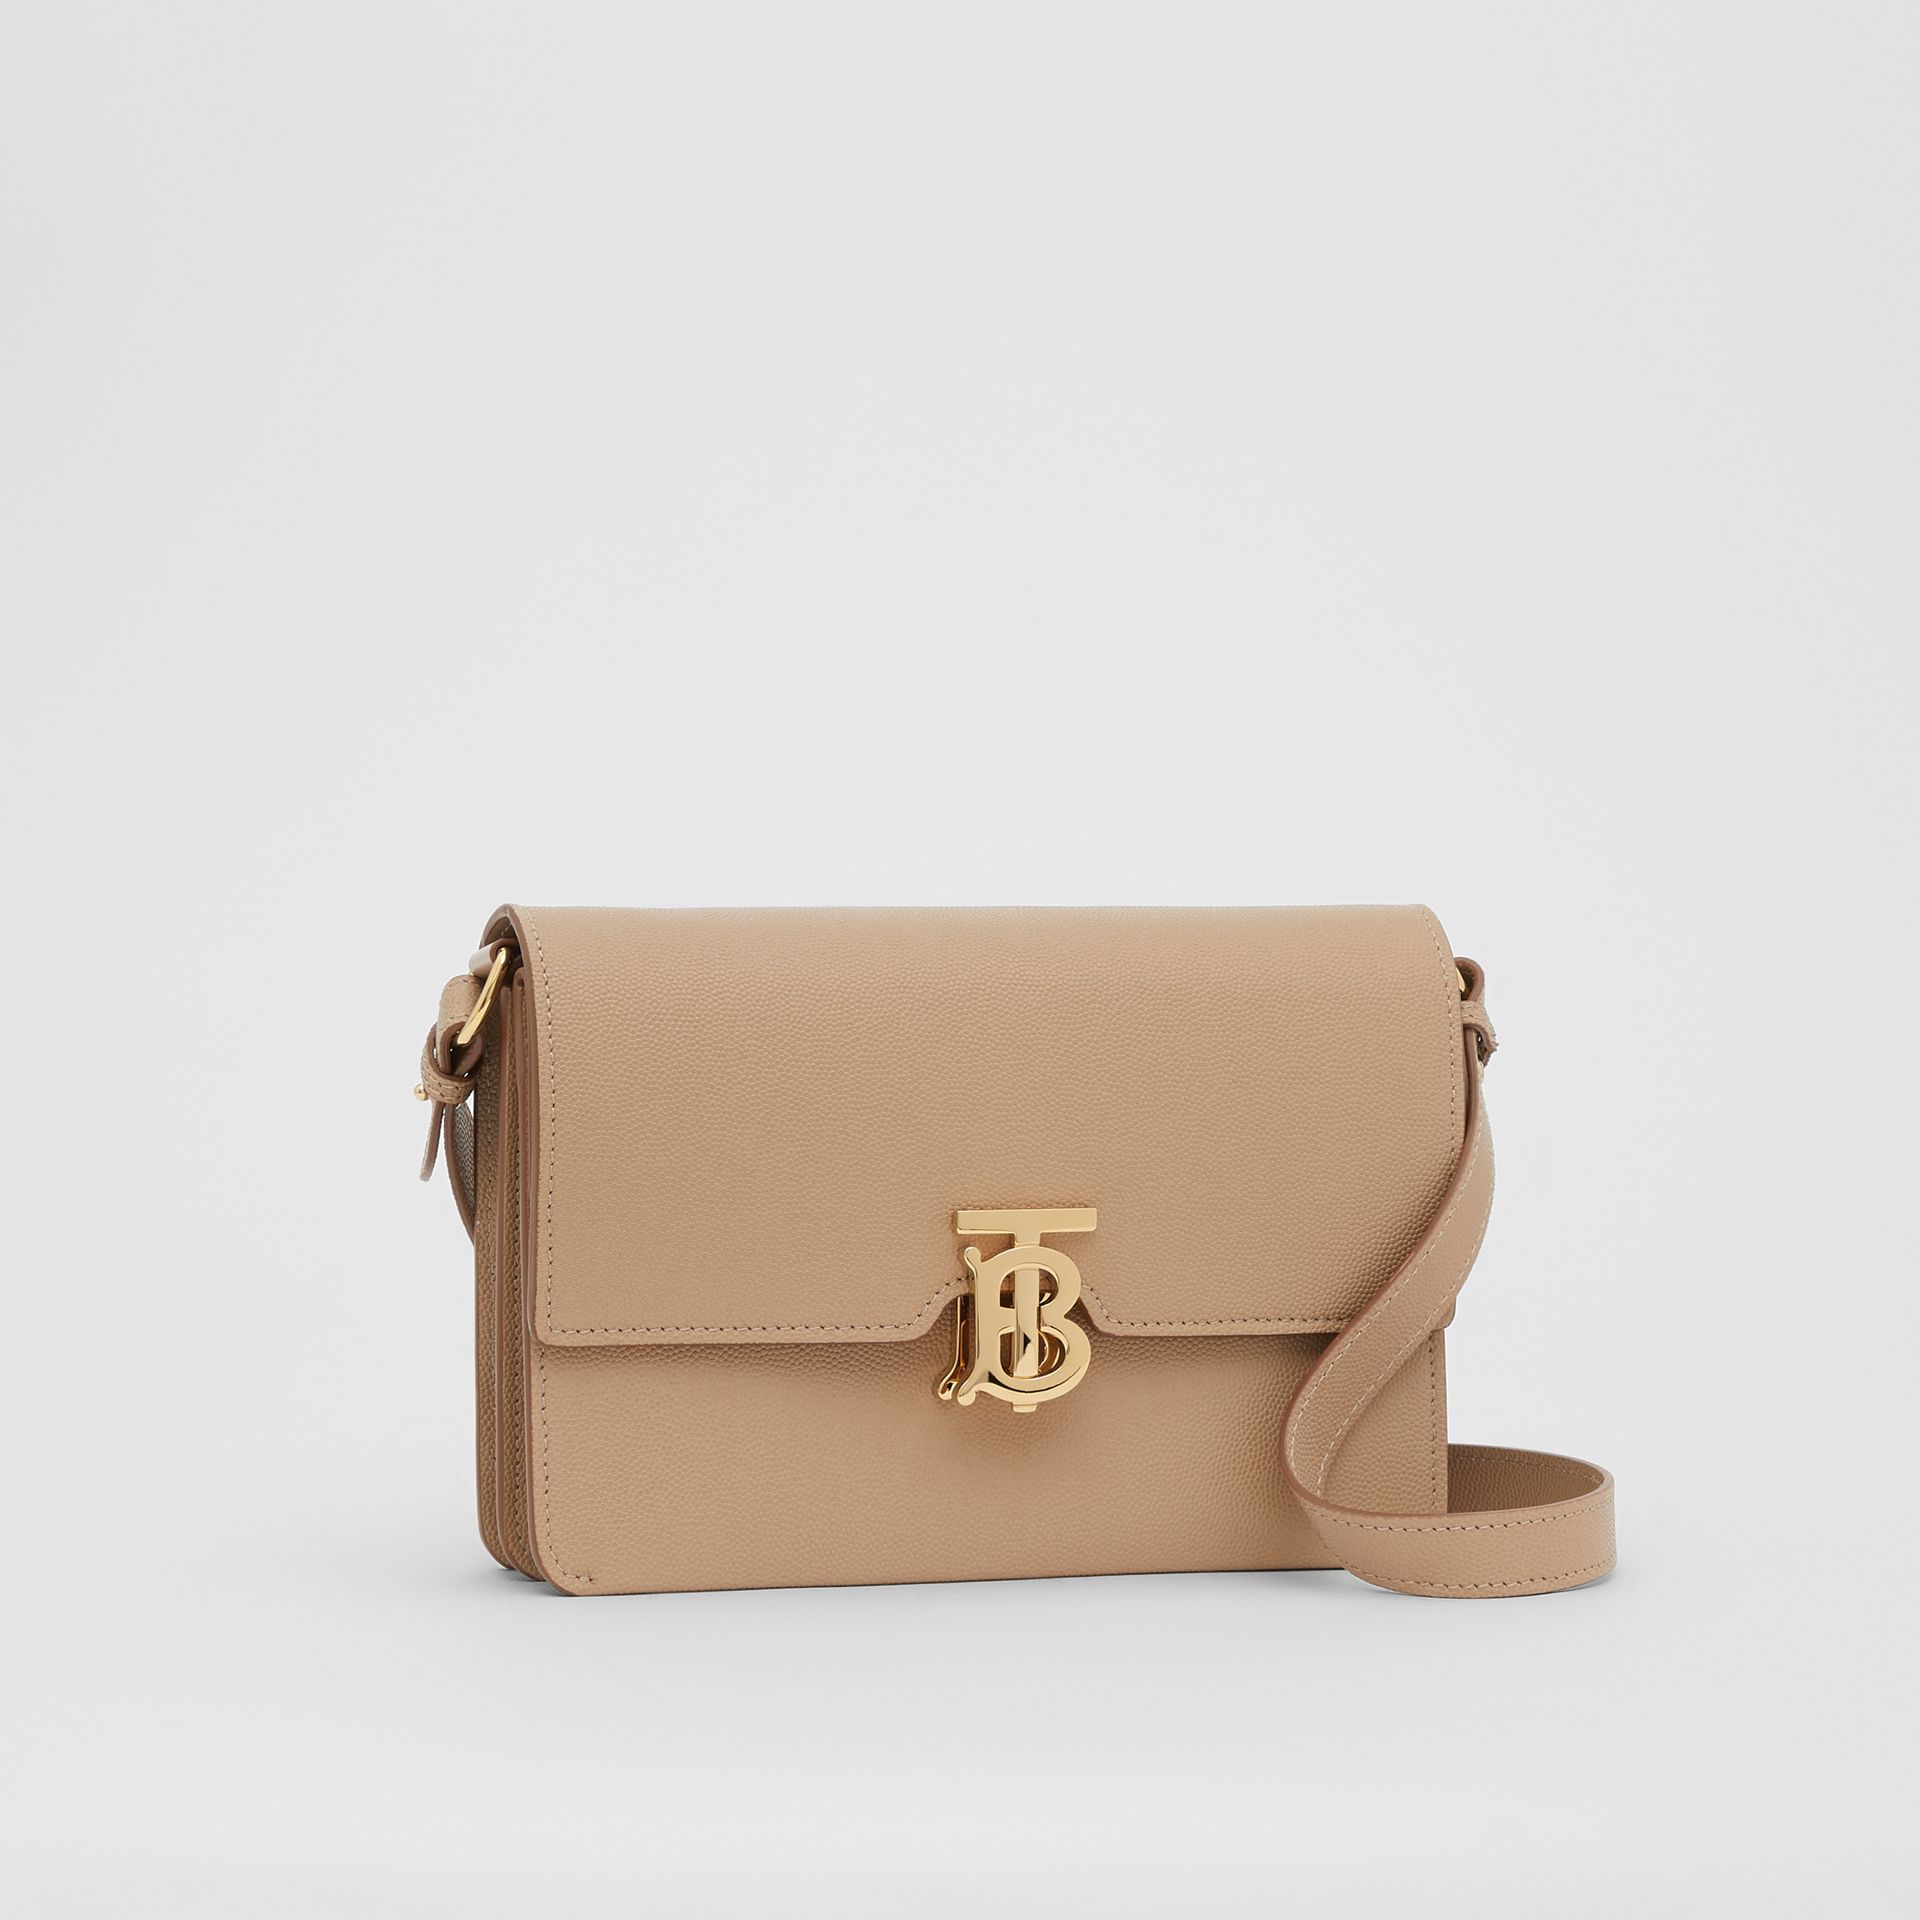 Small Monogram Motif Leather Crossbody Bag in Archive Beige - Women | Burberry Canada - gallery image 6